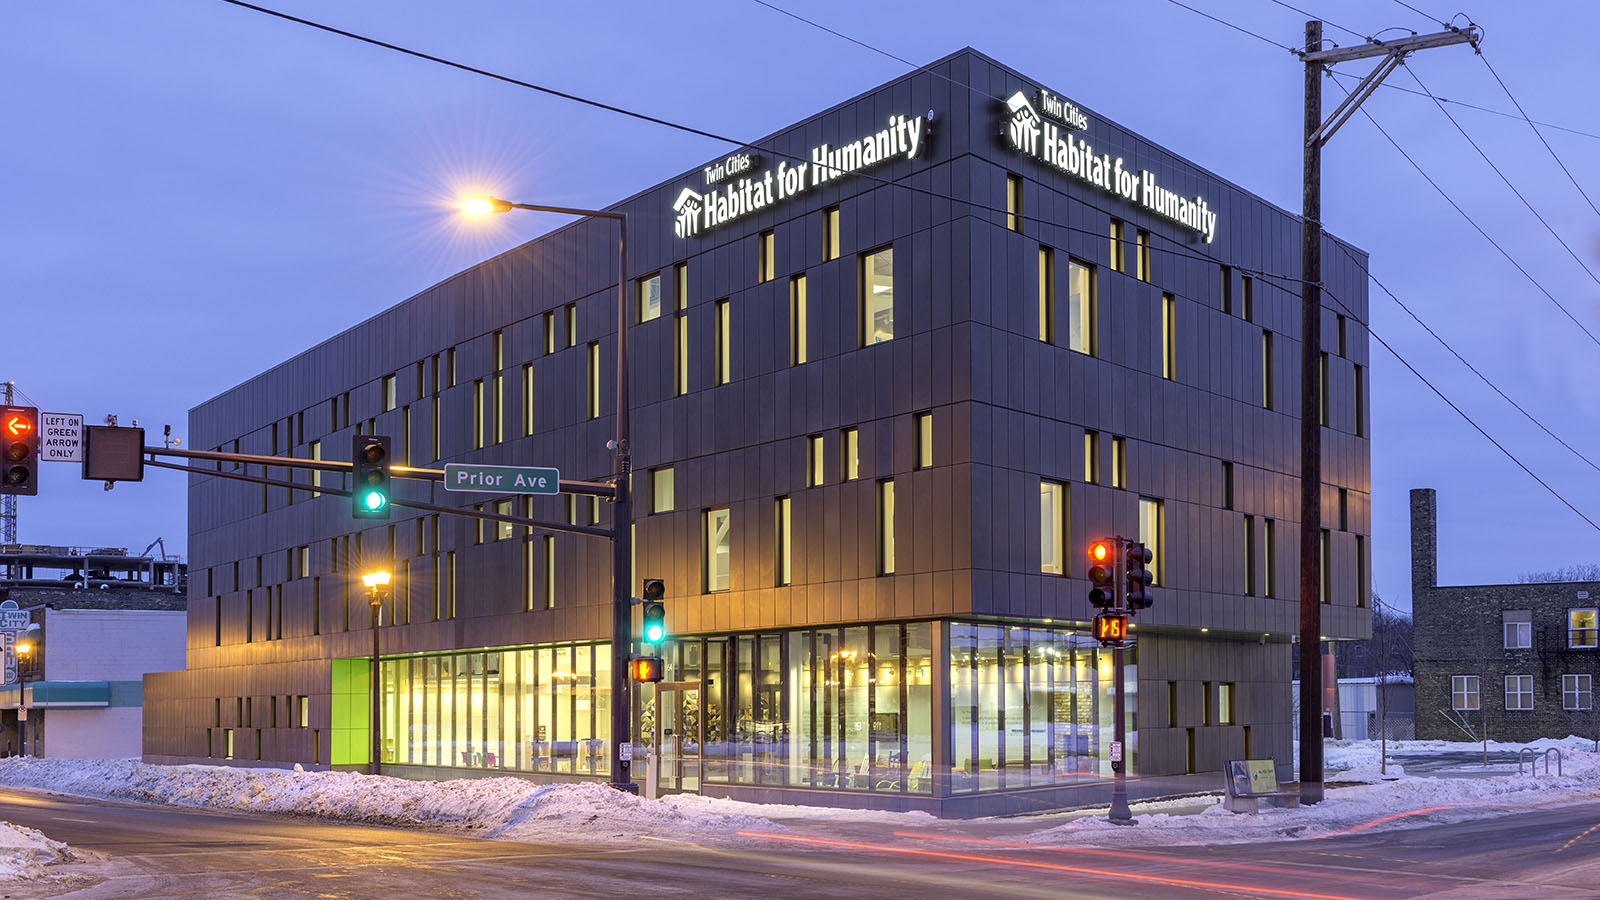 Twin Cities Habitat for Humanity office building at night